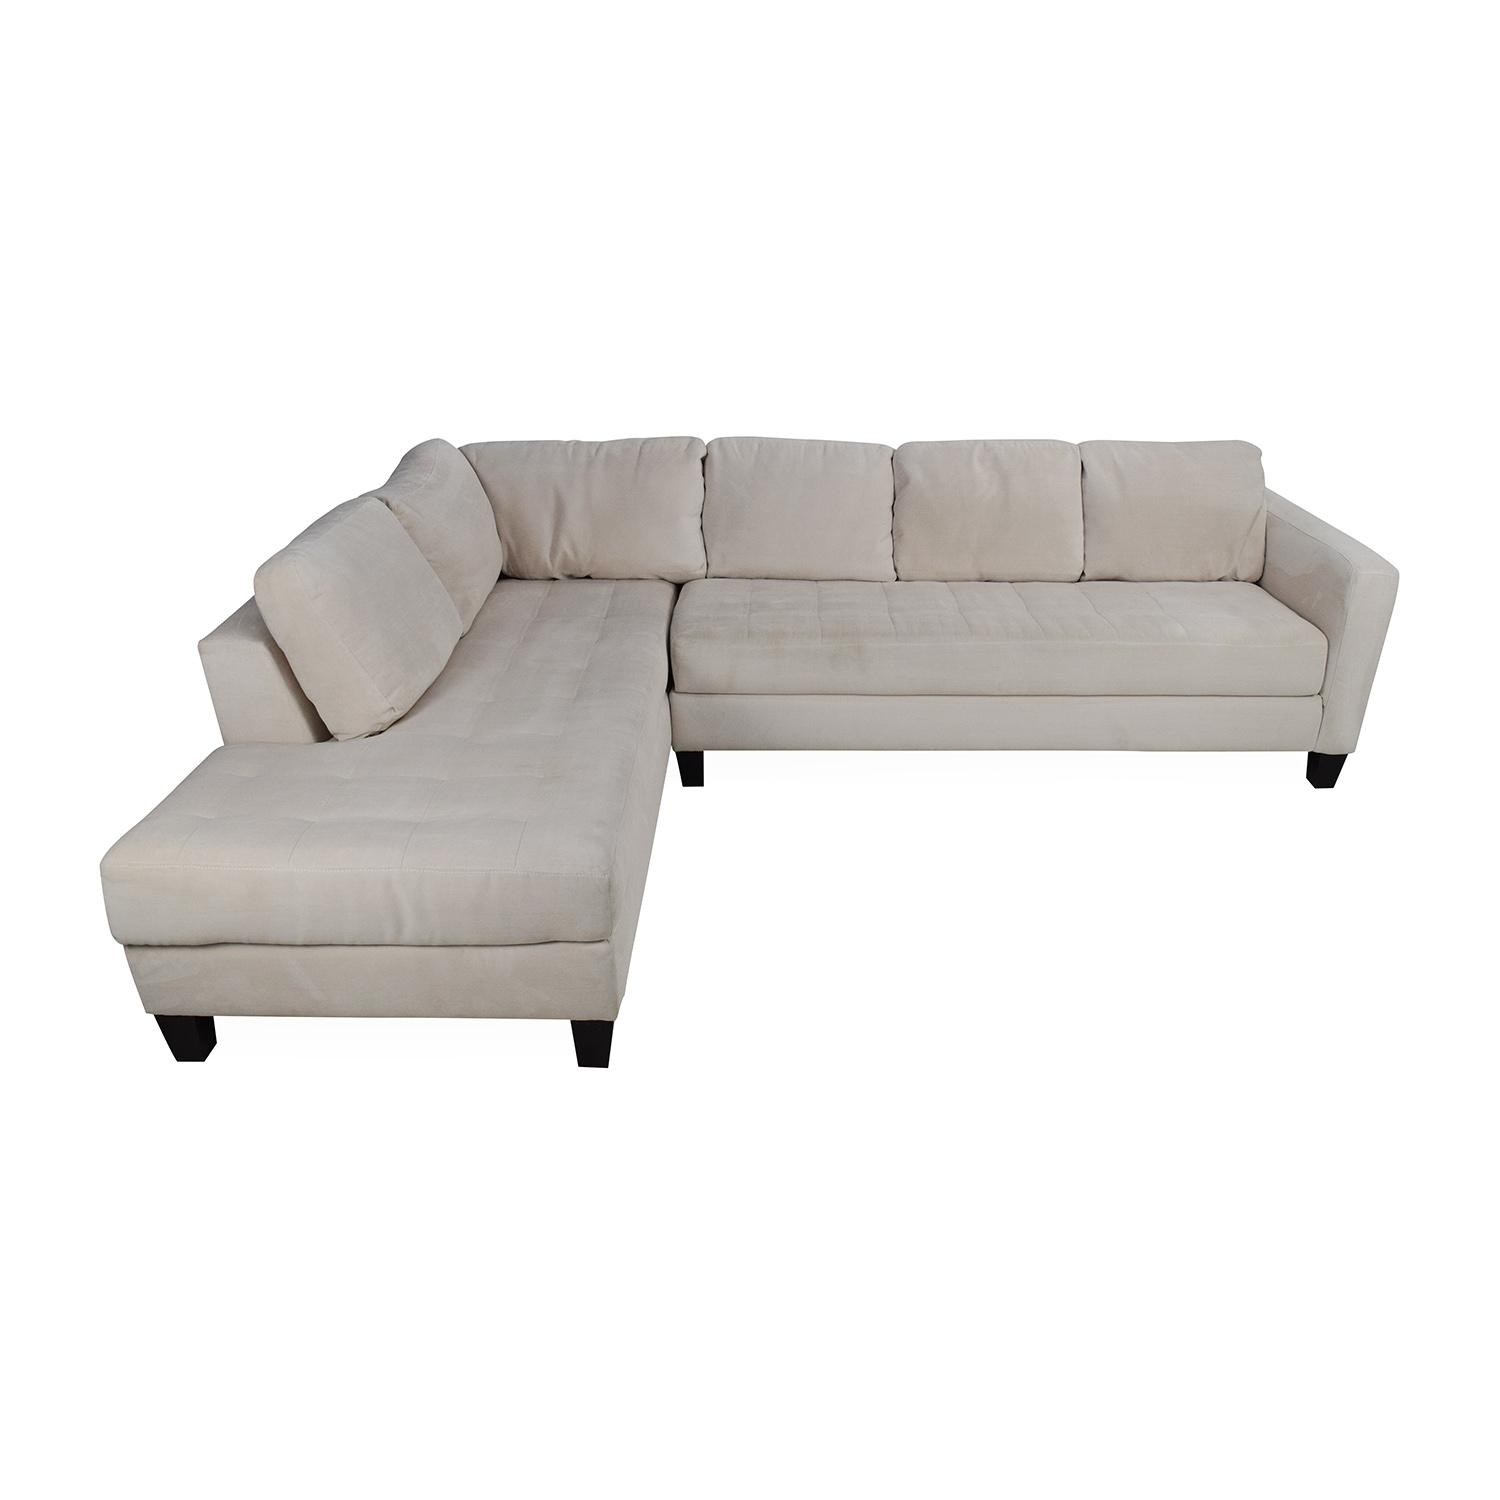 65% Off - Macy's Macy's Milo Fabric Microfiber Sectional / Sofas throughout Macys Sectional